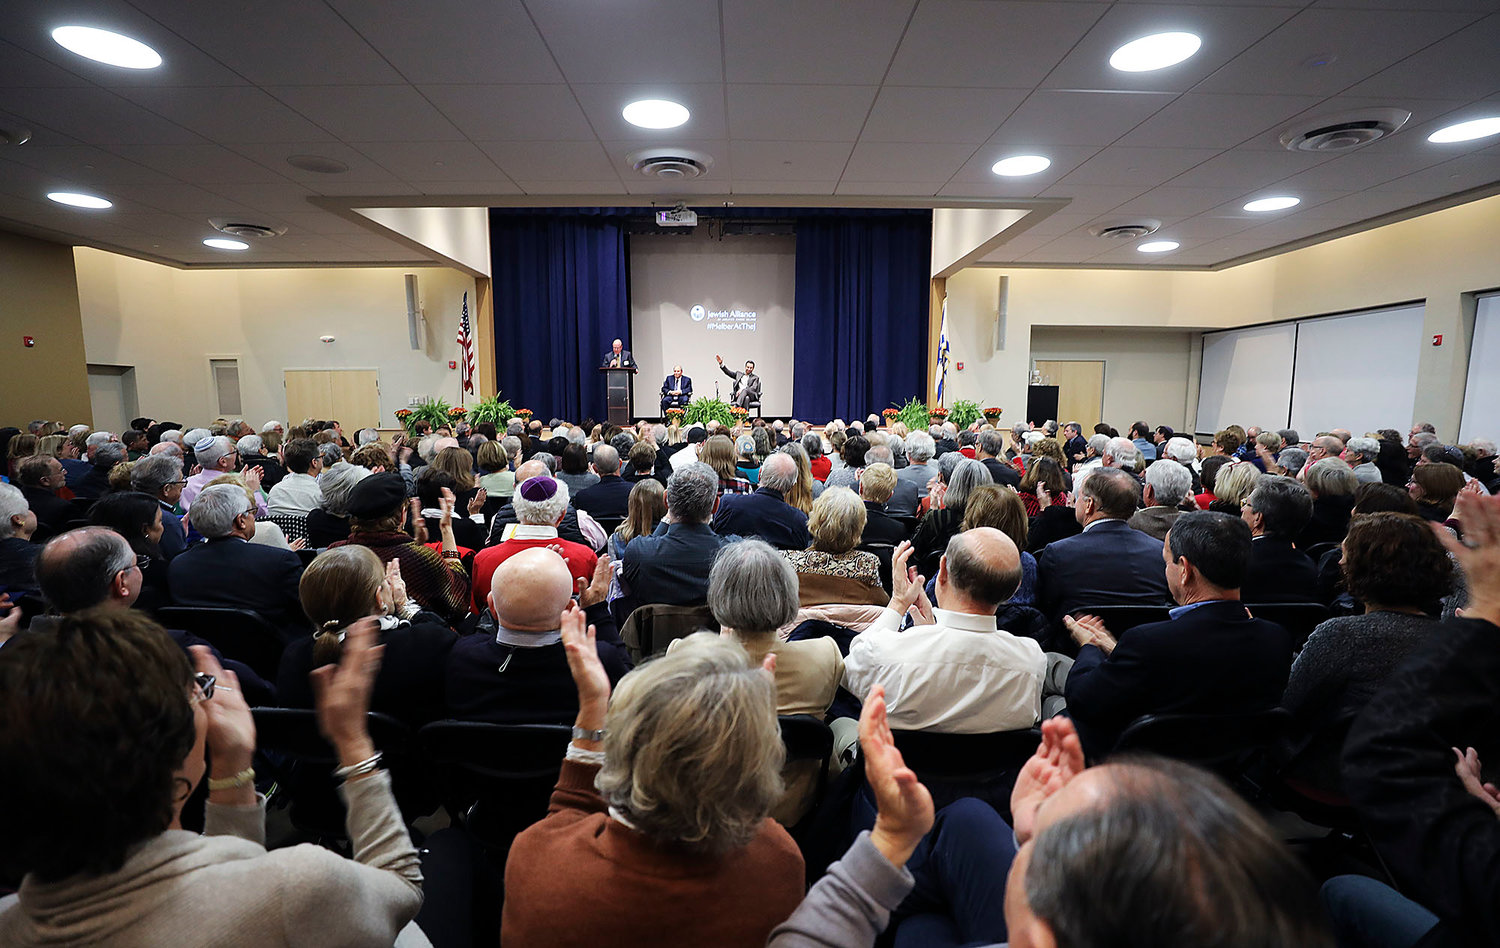 The Baxt Social Hall at the Dwares Jewish Community Center was filled to capacity Nov. 3 for the Jewish Alliance's Campaign Event.